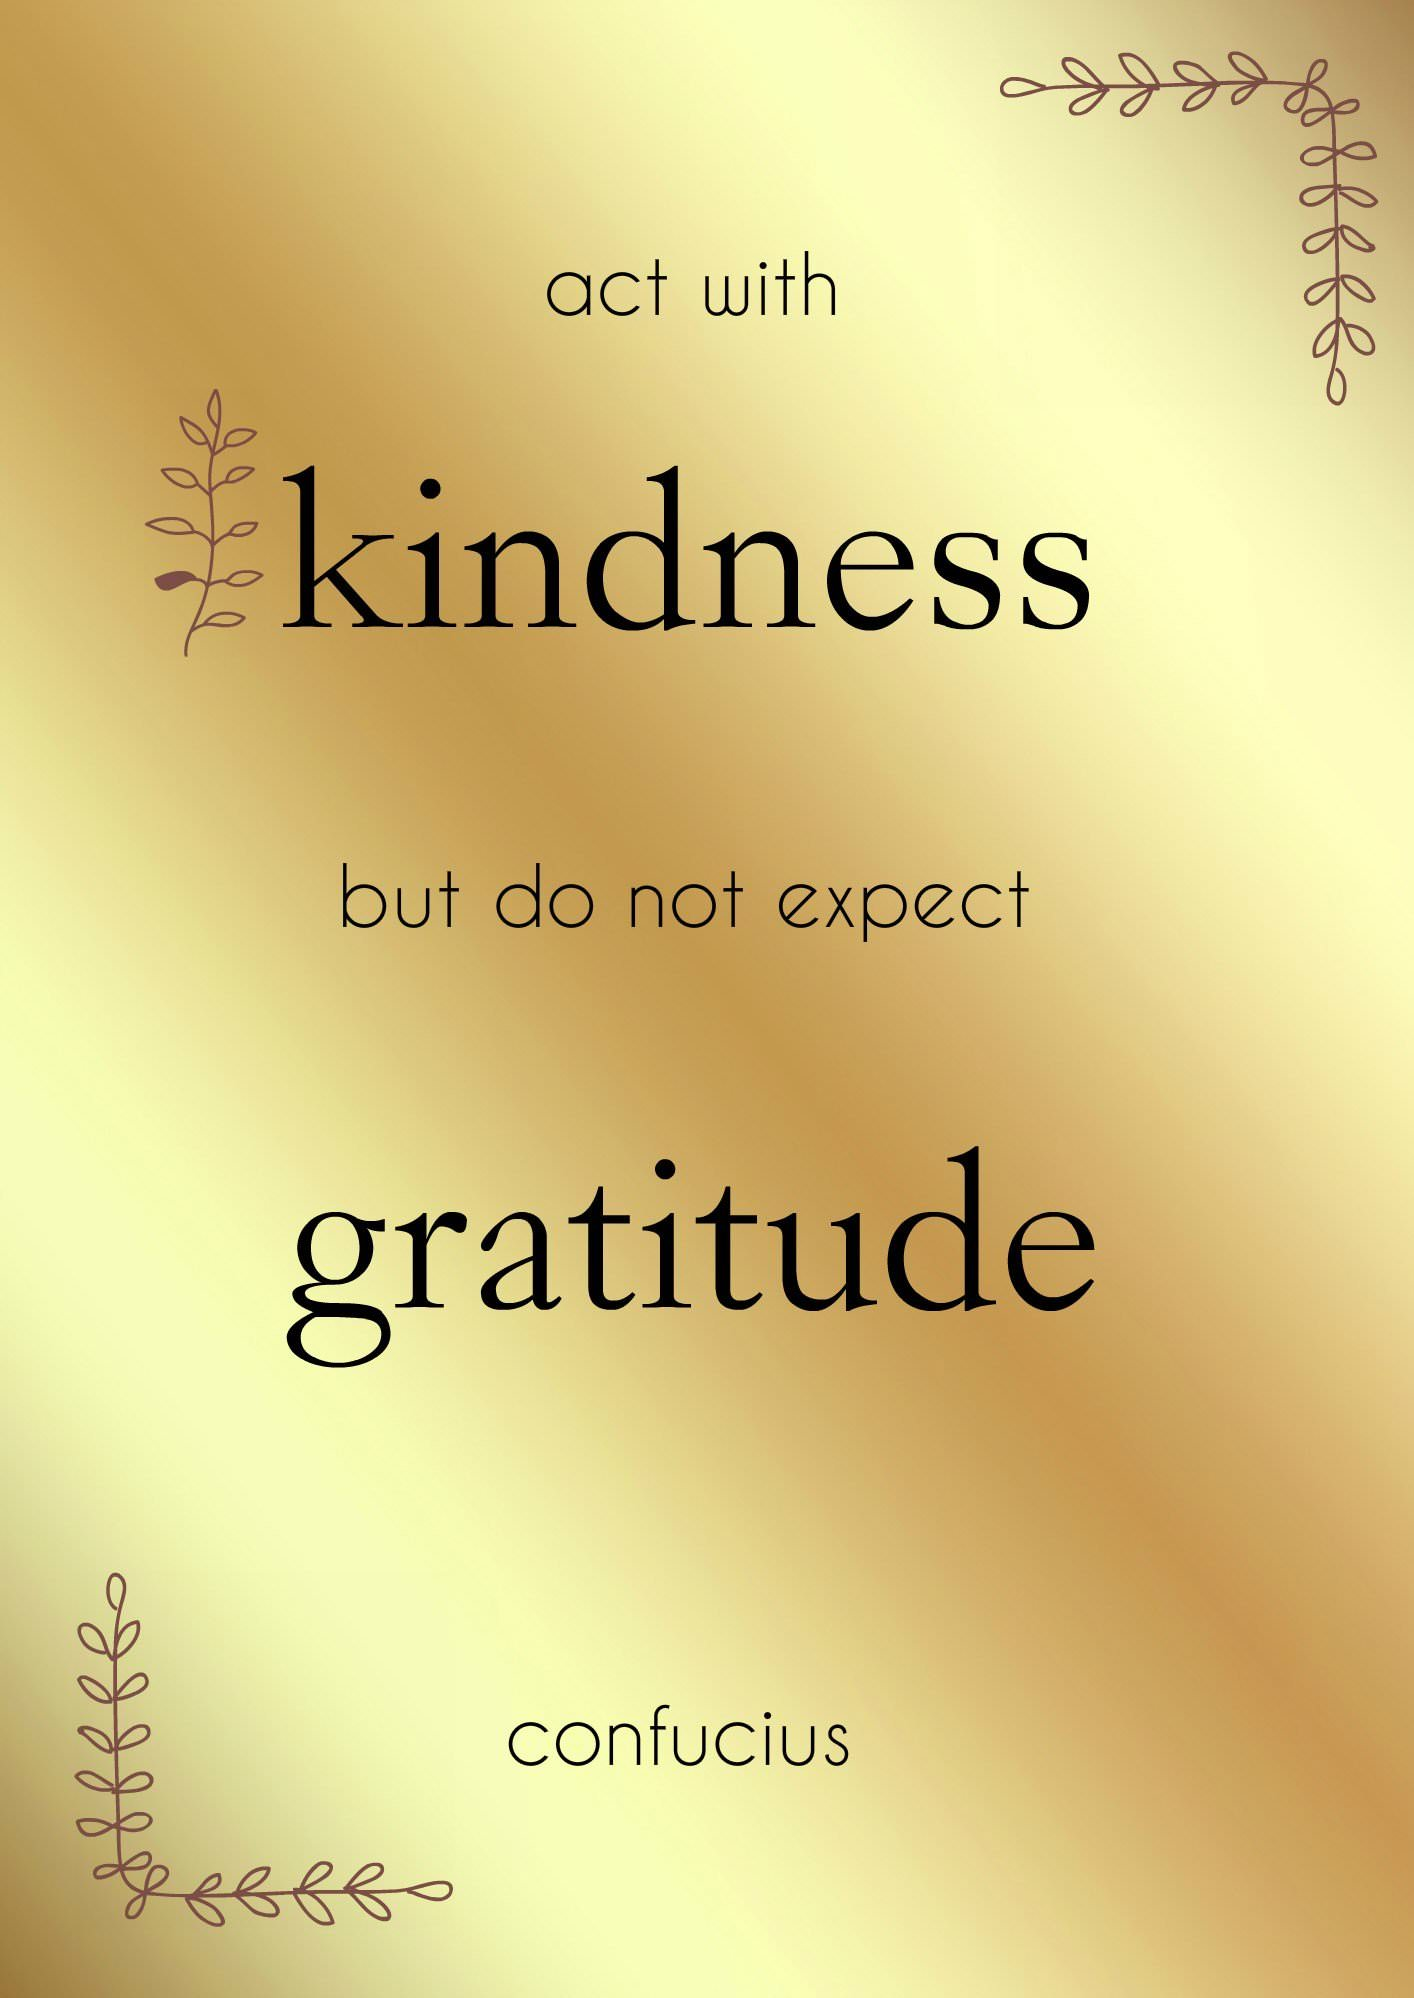 Quotes Gratitude Beautiful Quotes About Kindness